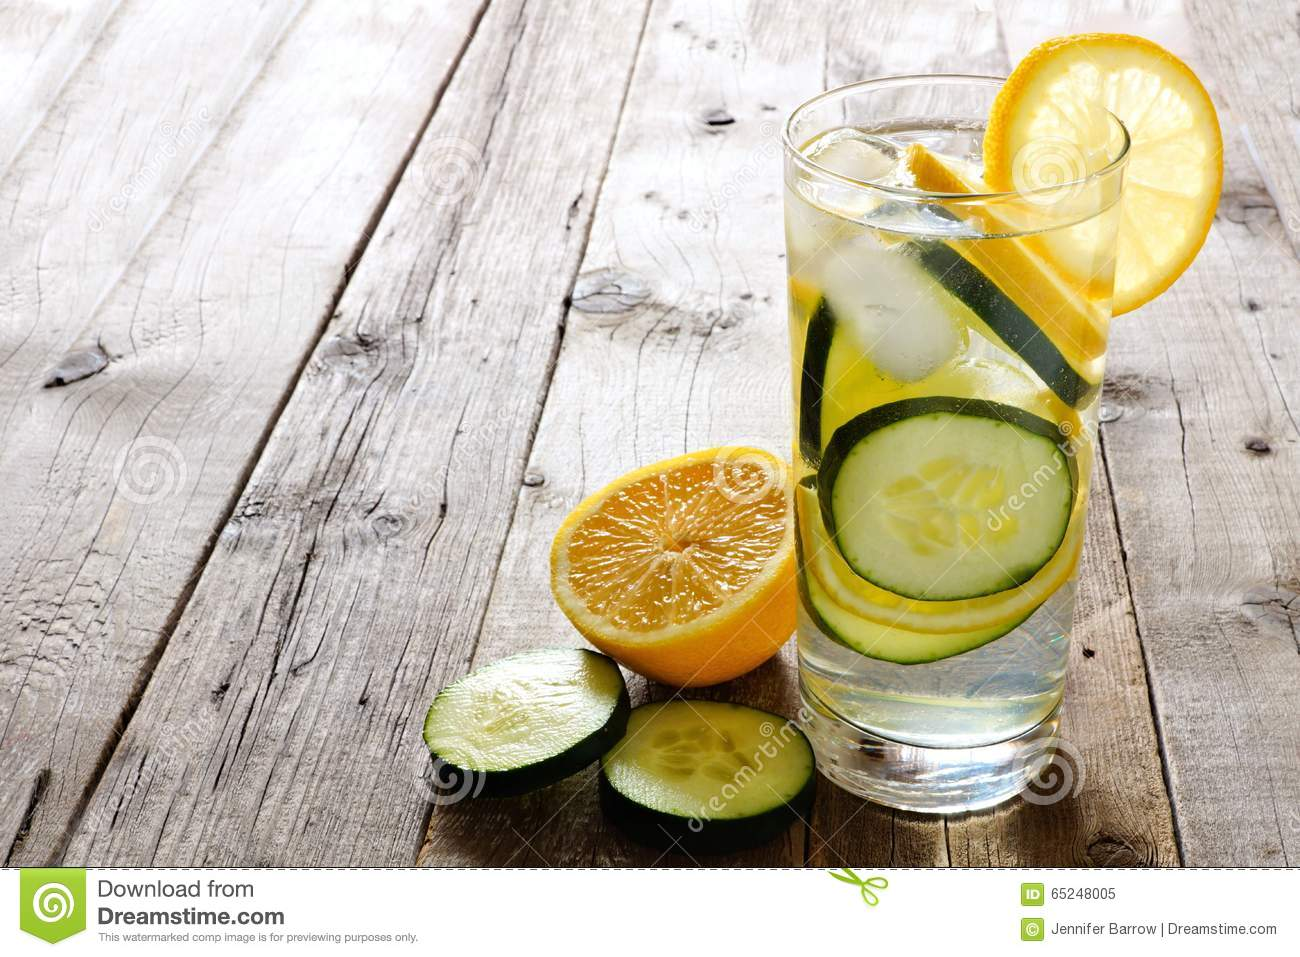 Lemon Cucumber Detox Water In A Glass Over Rustic Wood